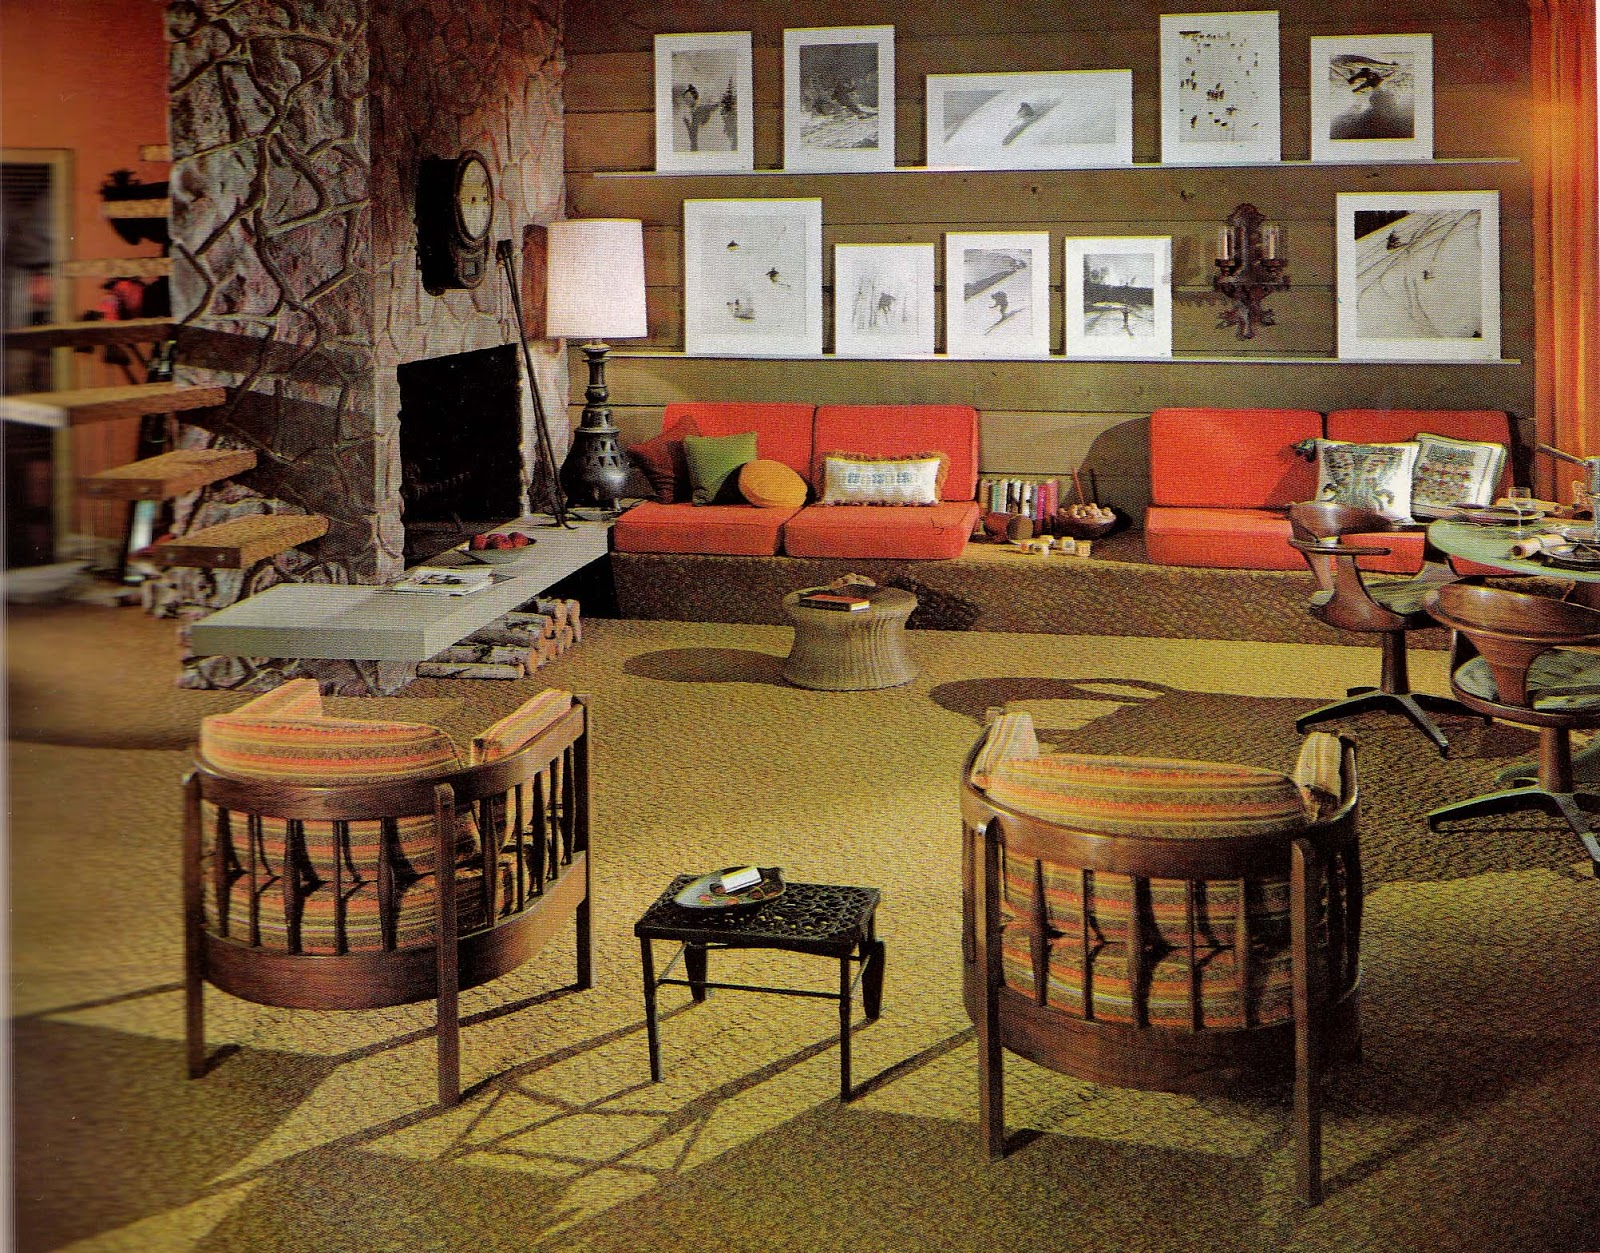 S Design Interieur 1960s Interior Décor The Decade Of Psychedelia Gave Rise